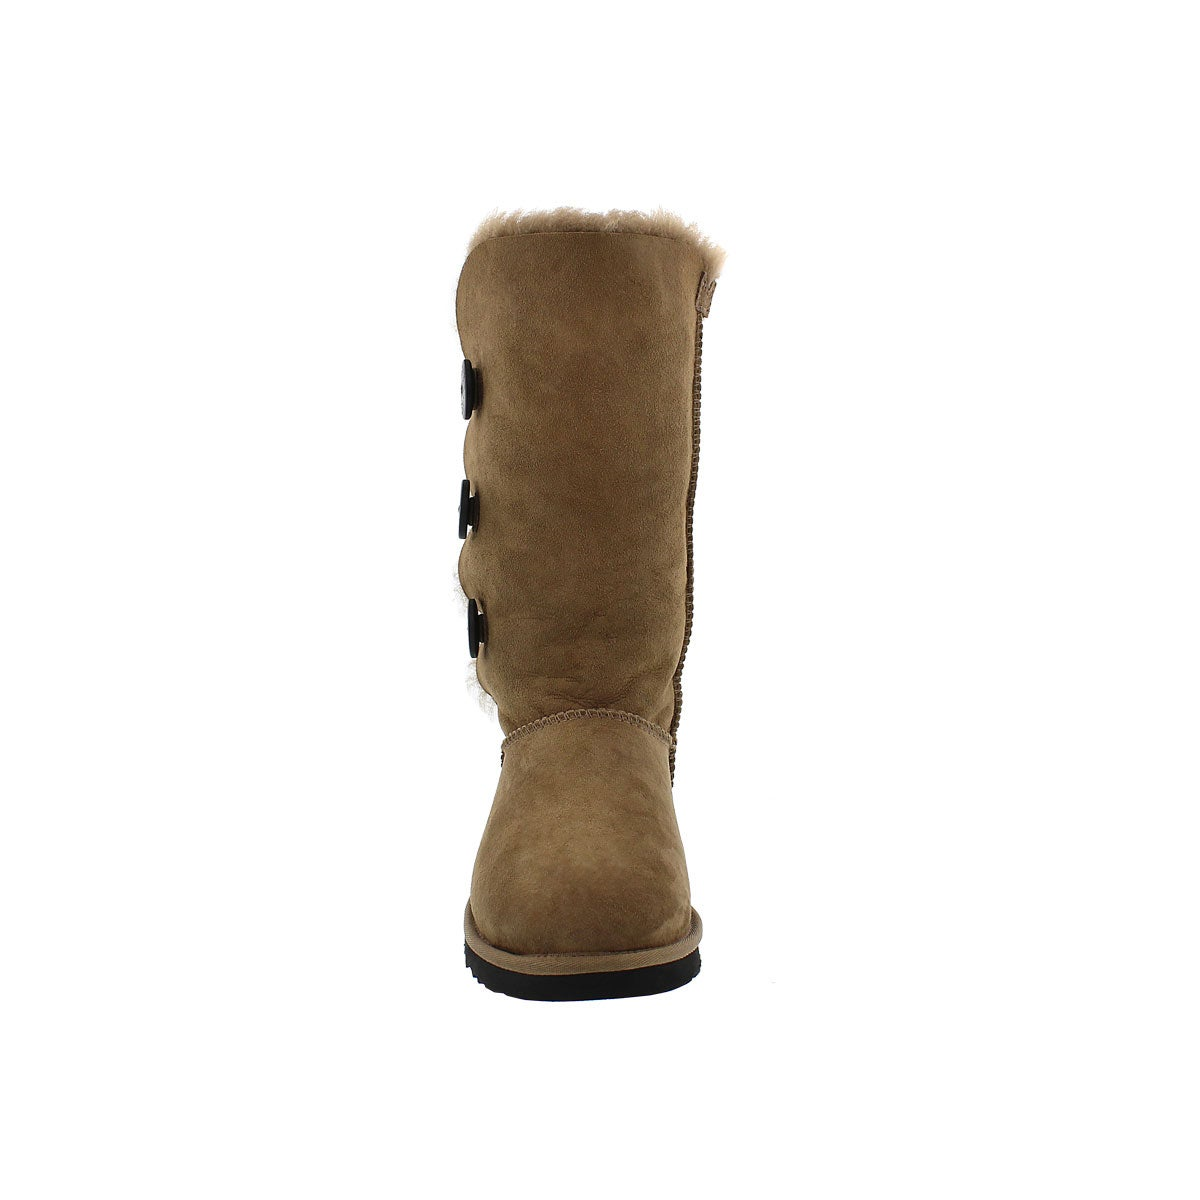 Lds Bailey Triplet dryleaf sheepskn boot